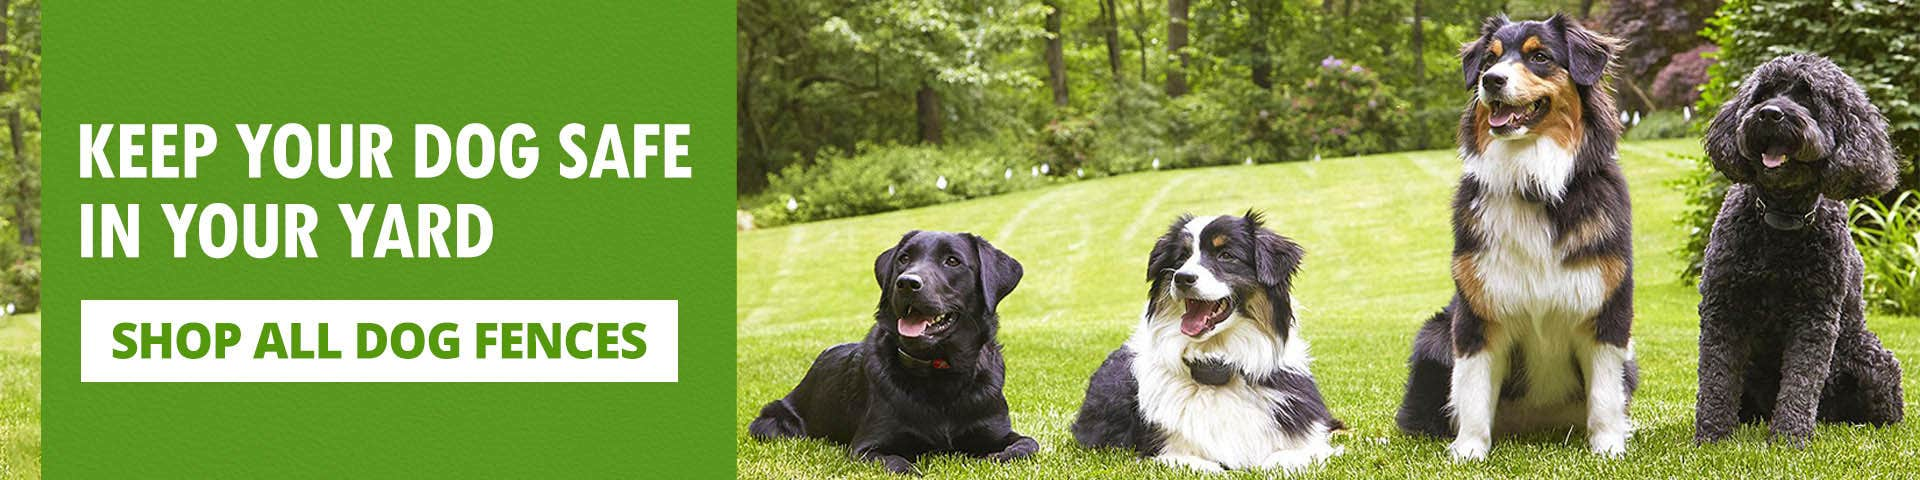 Keep your dog safe in your yard